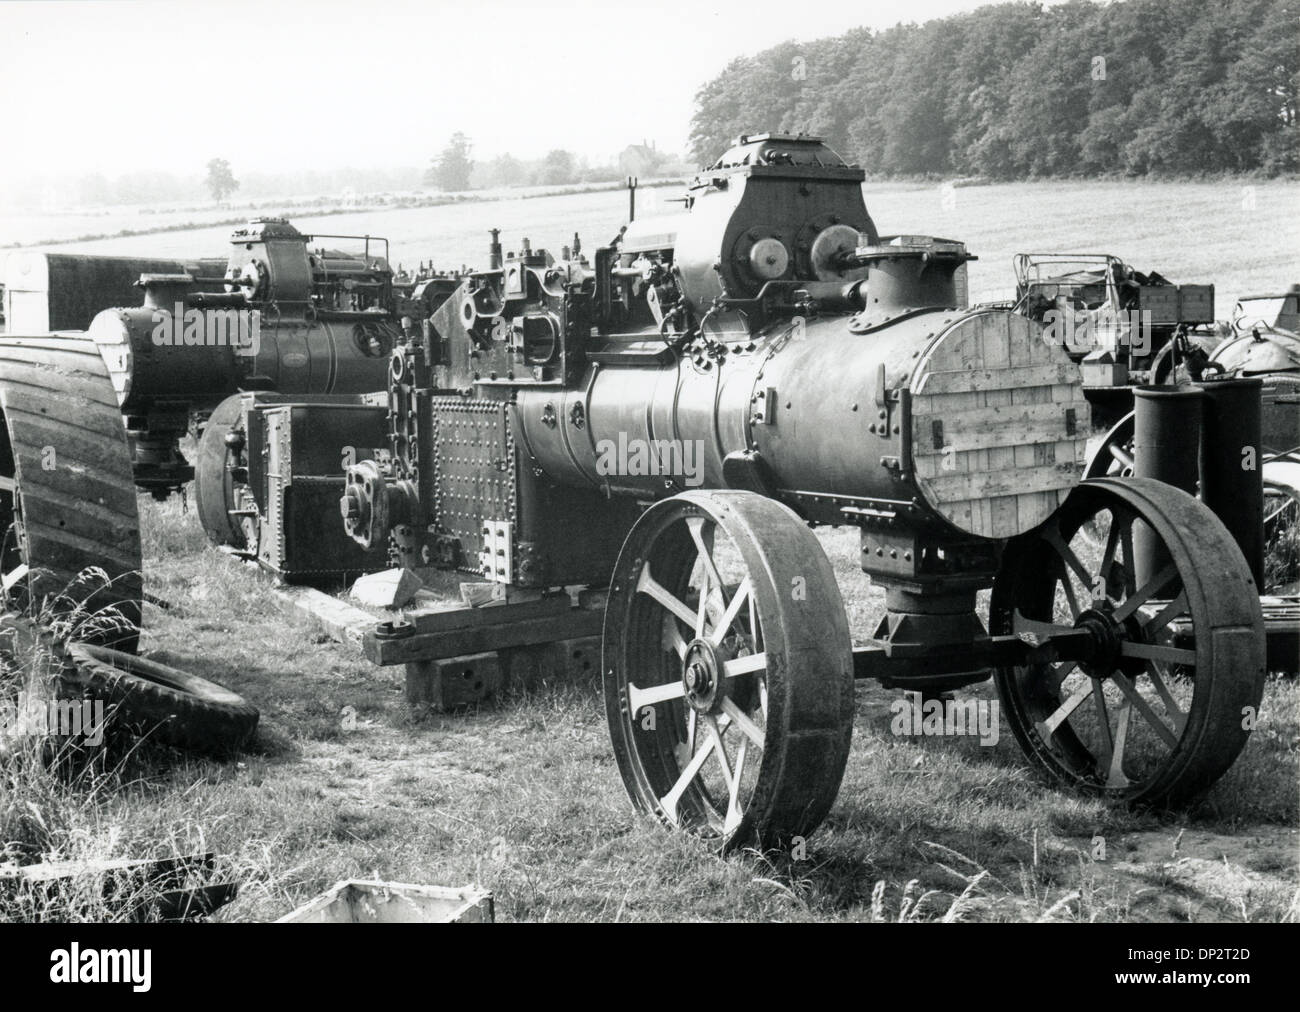 dismantled steam driven traction engines in a field - Stock Image